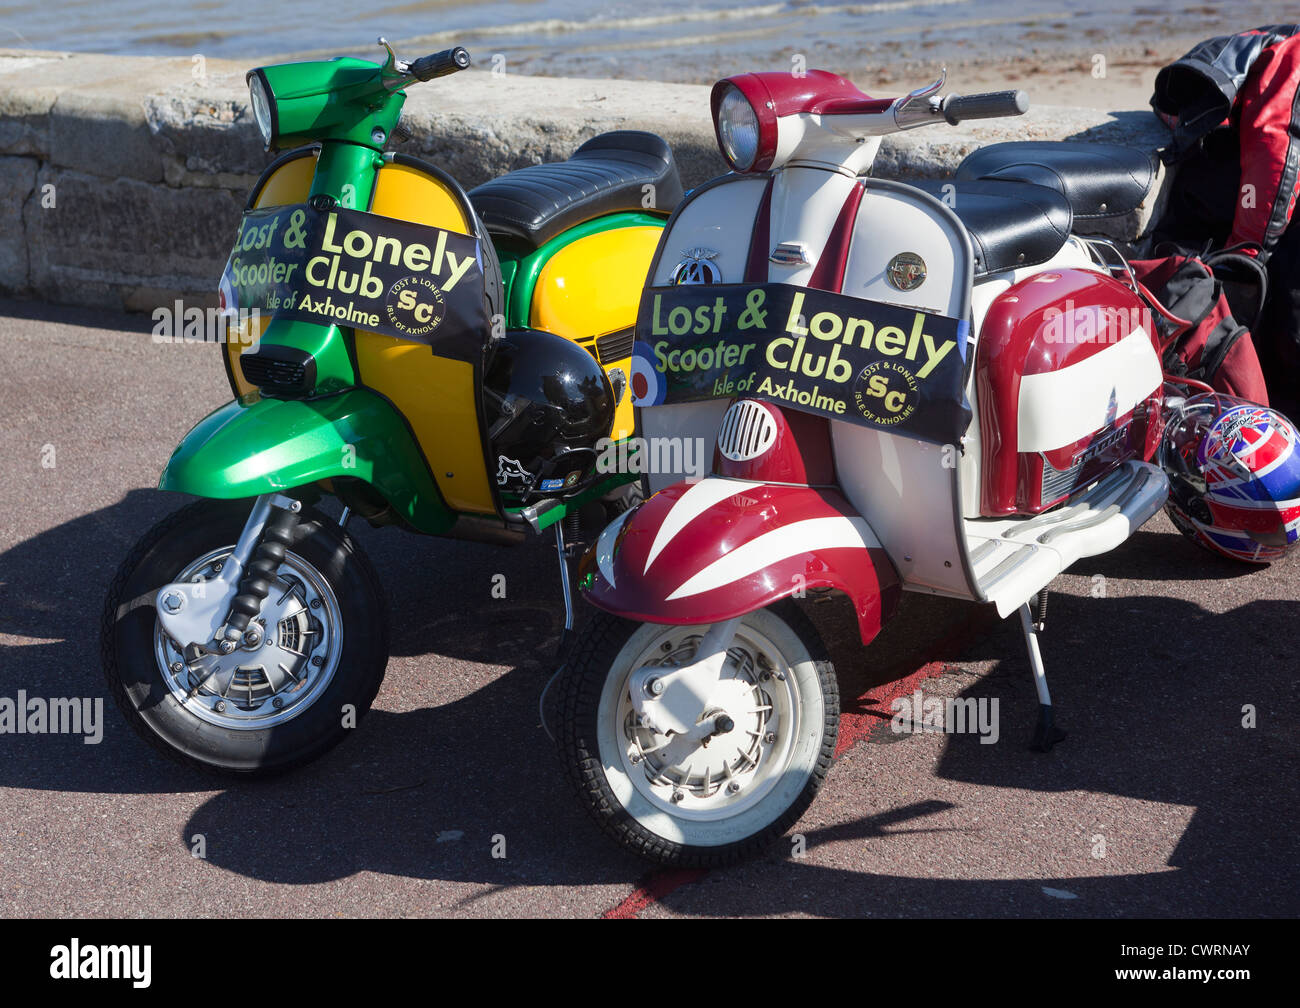 Lost and Lonely Scooter Club Isle of Axholme - Stock Image